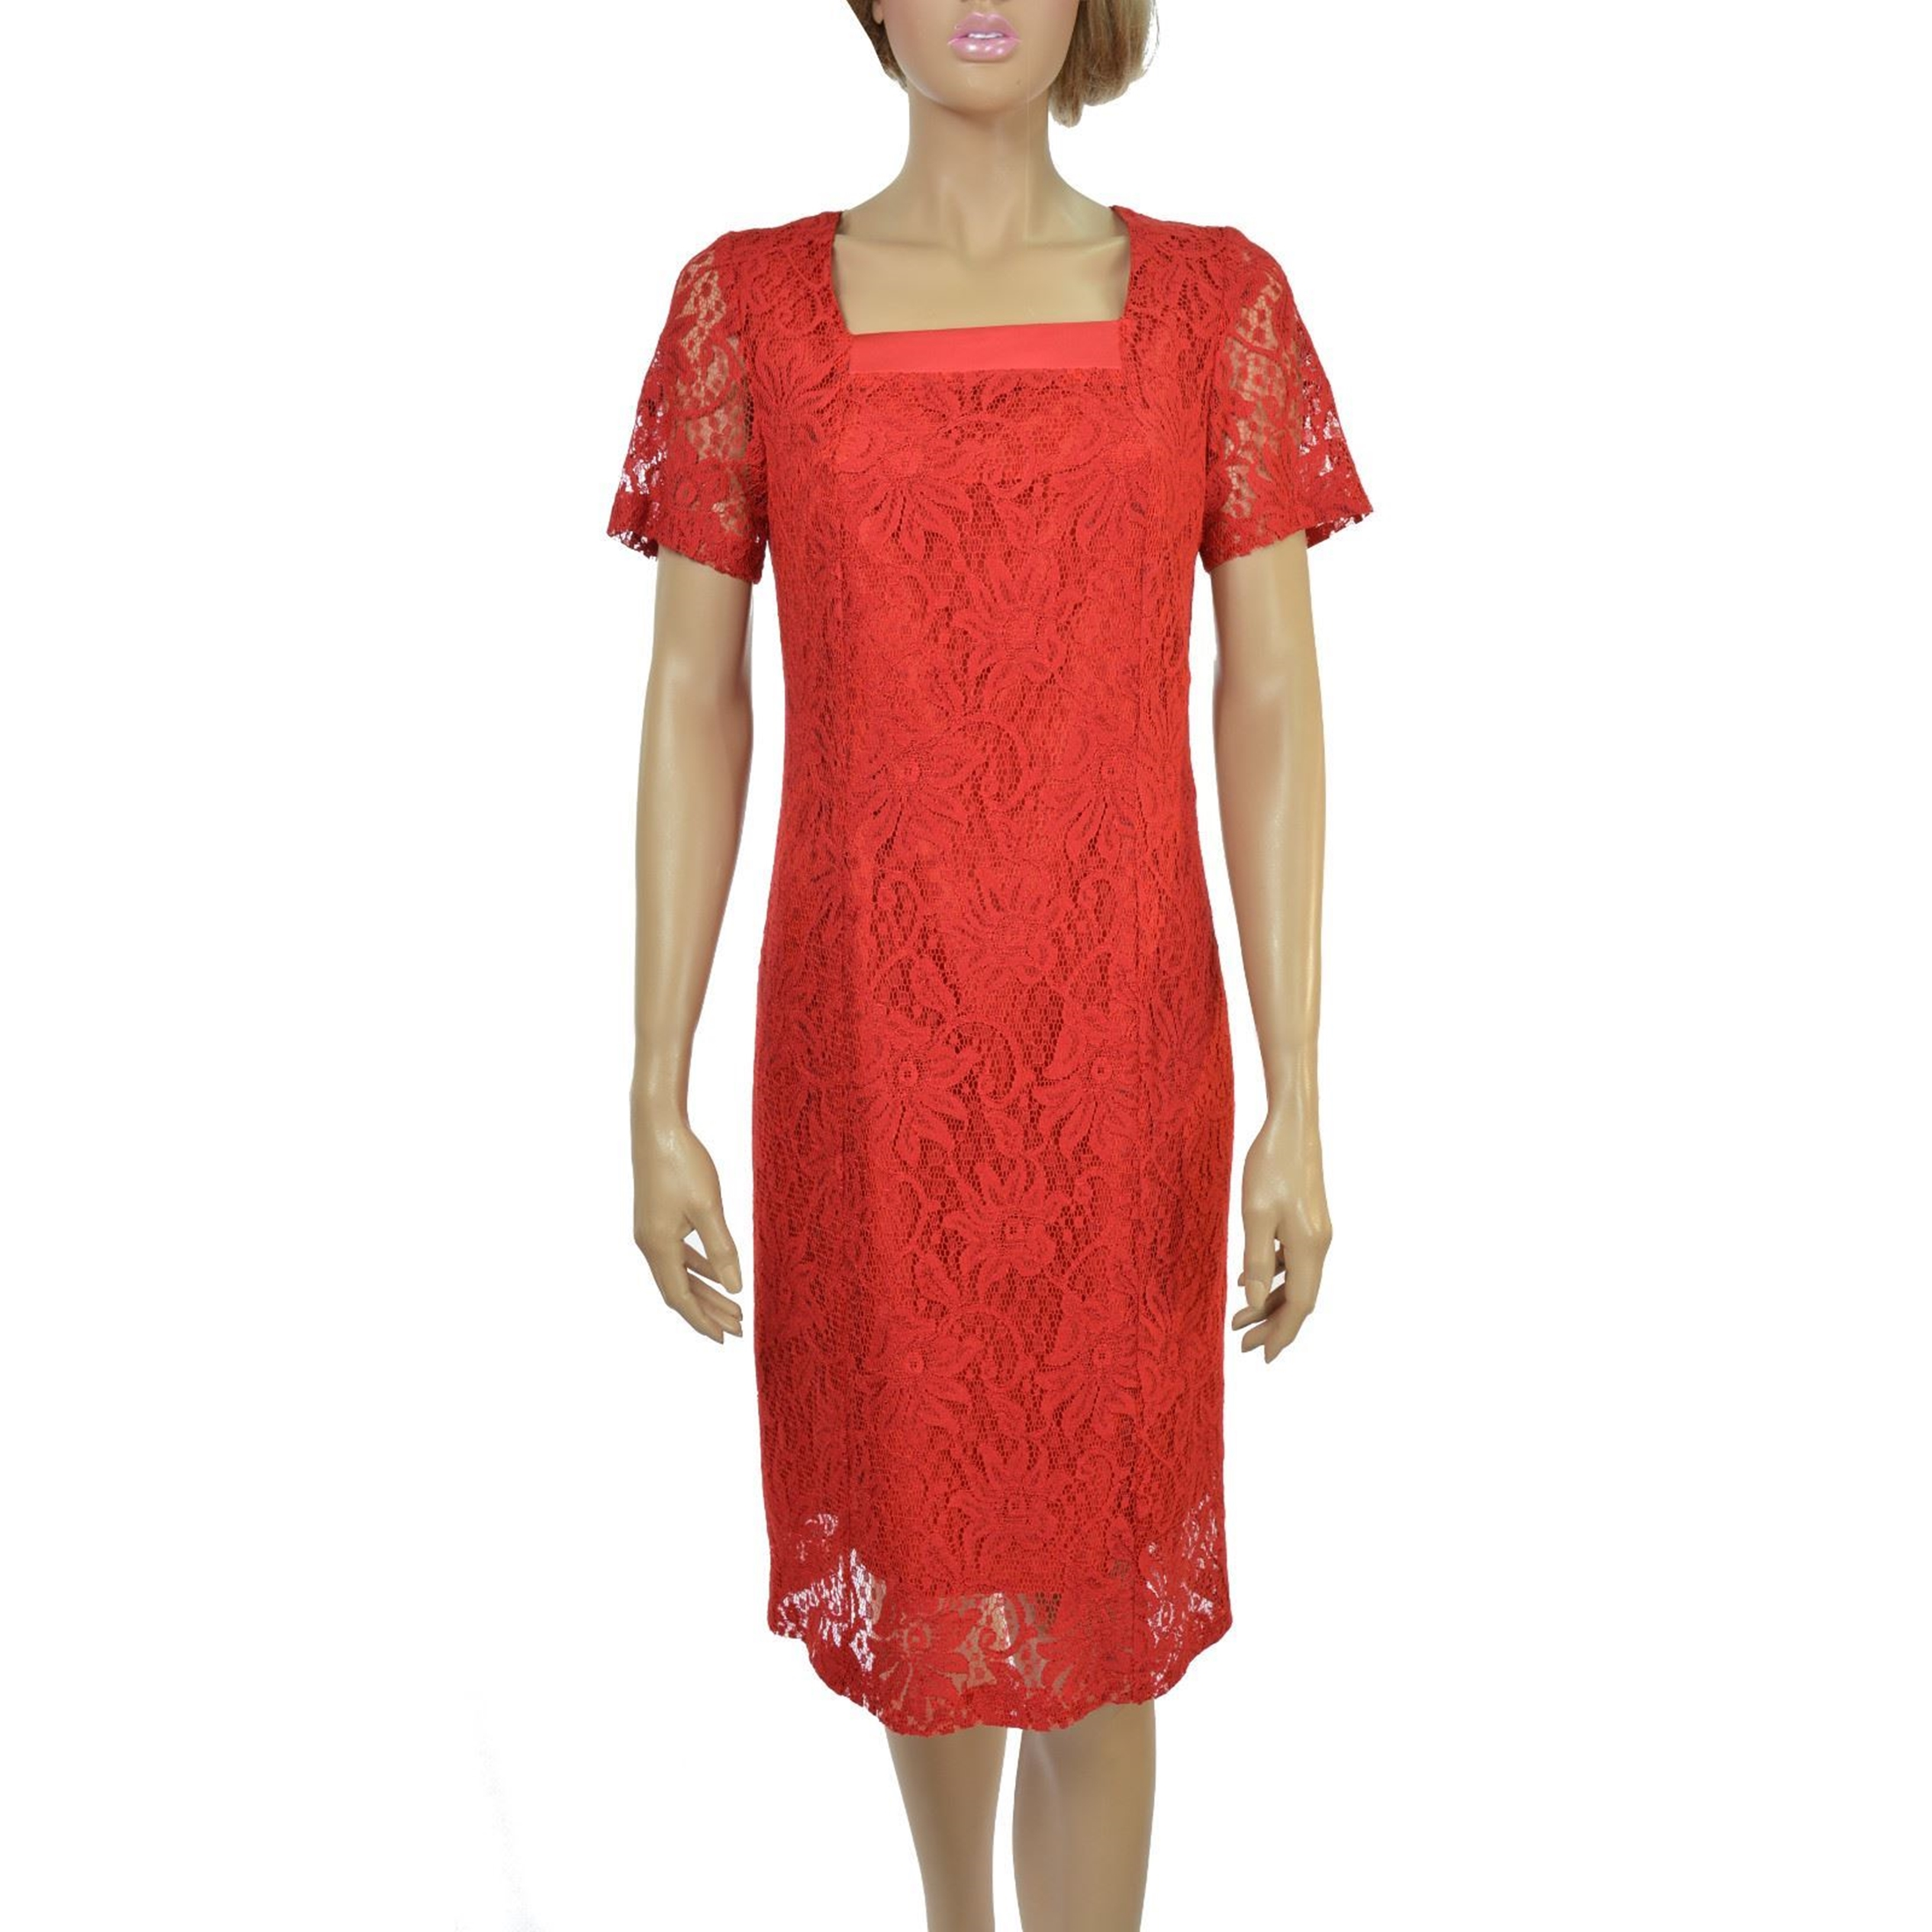 Picture of Women's Dress - LM451438 RED